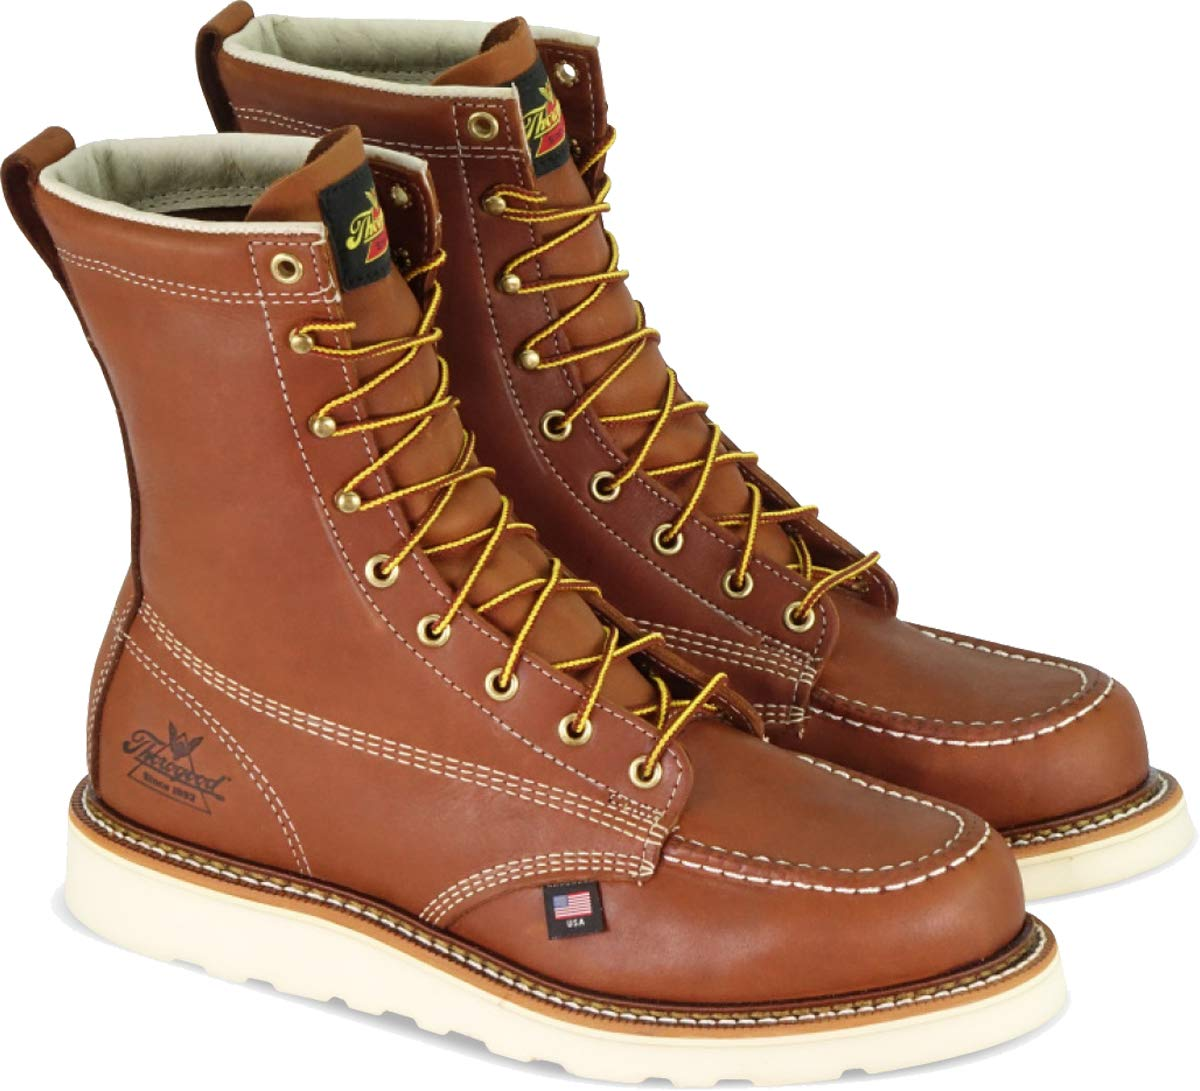 Thorogood 804-4208 Men's American Heritage 8'' Moc Toe, MAXwear Wedge Safety Toe, Tobacco Oil-Tanned - 10 D US